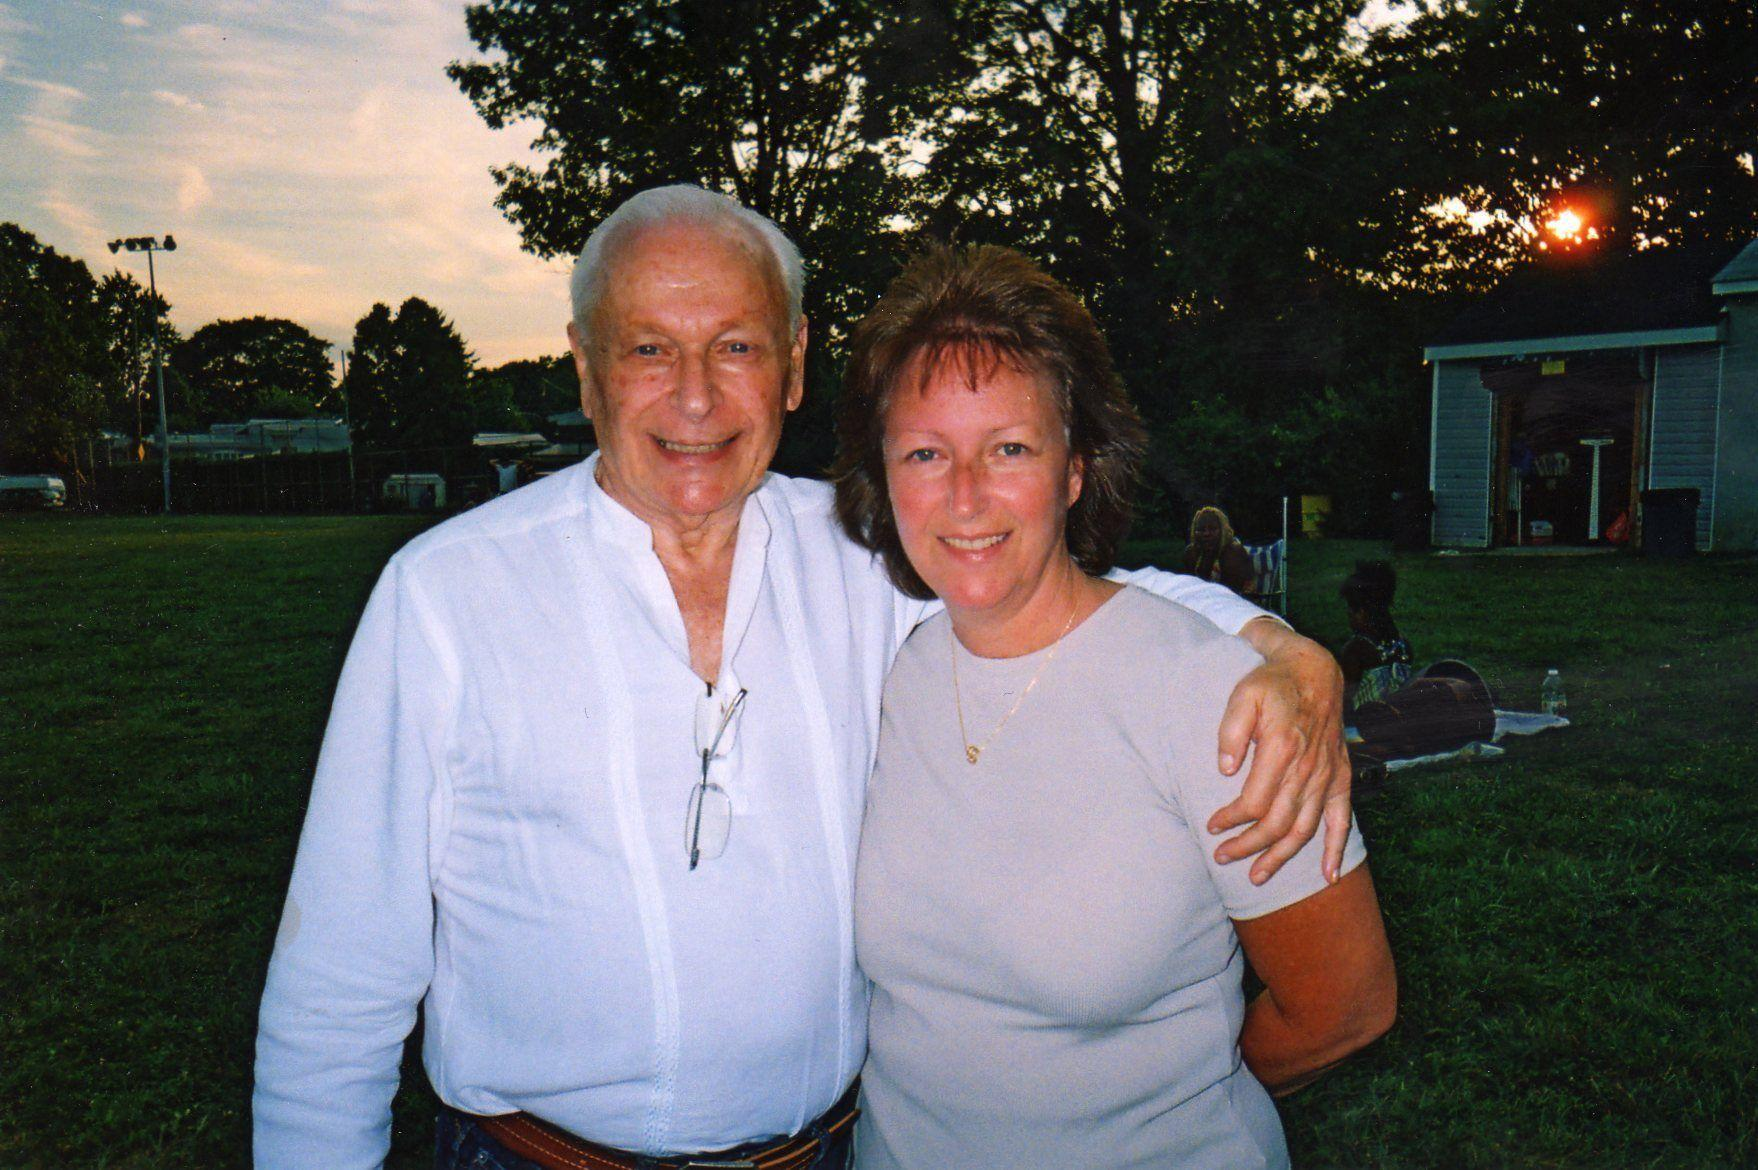 Meet Singles Over 50 in Warminster PA